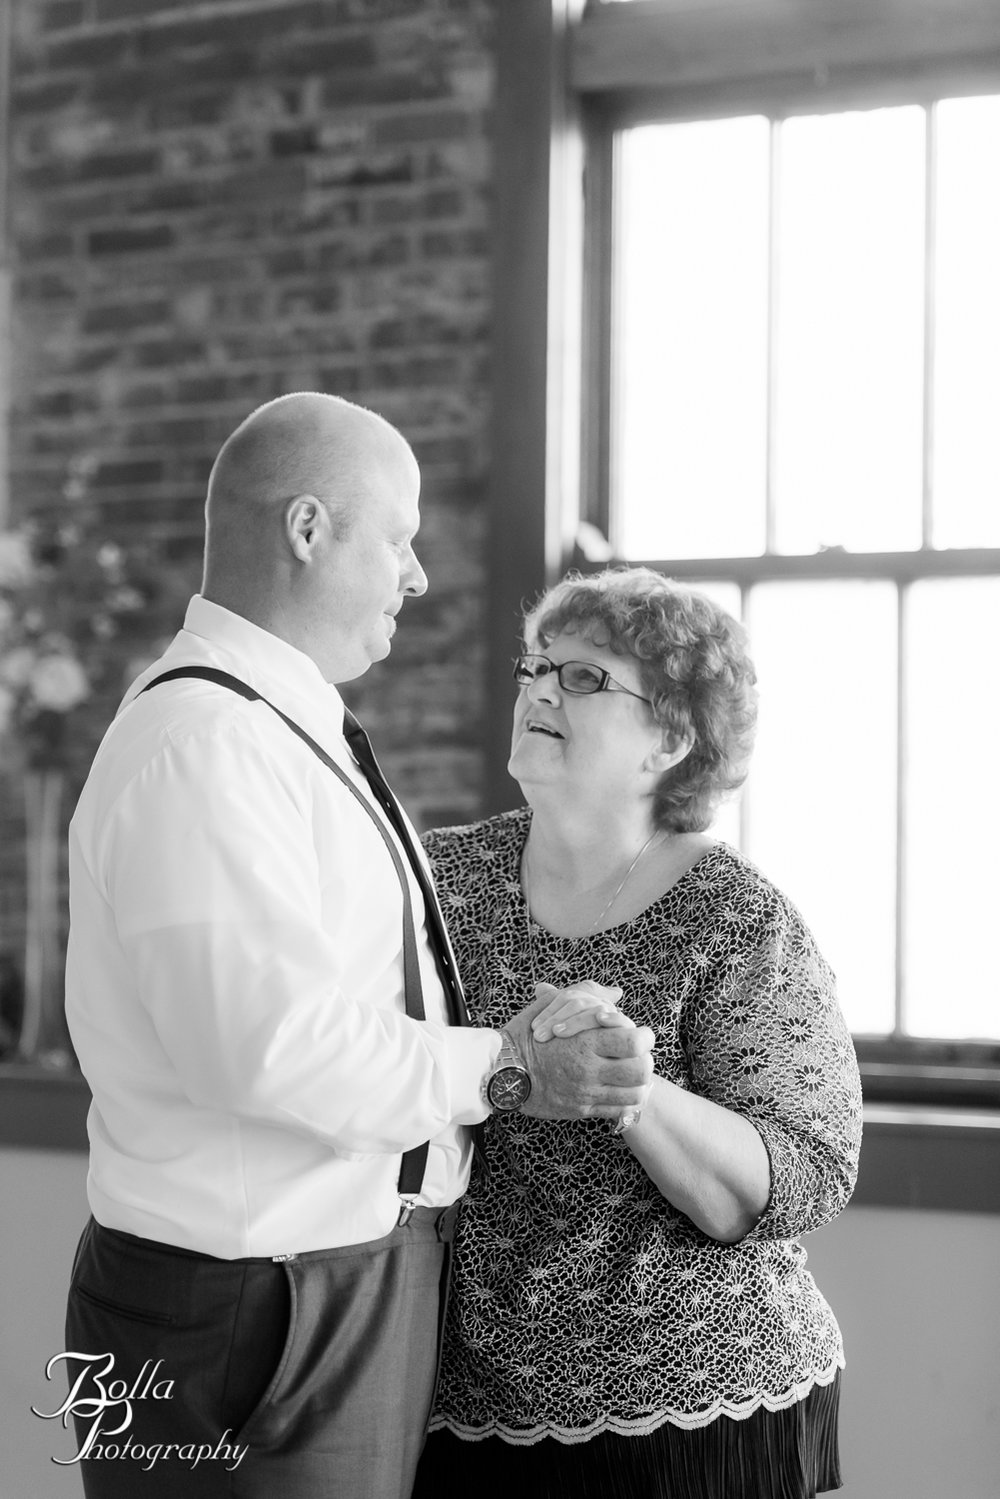 Bolla_Photography_St_Louis_wedding_photographer_Wildey_Theater_Edwardsville-0396.jpg